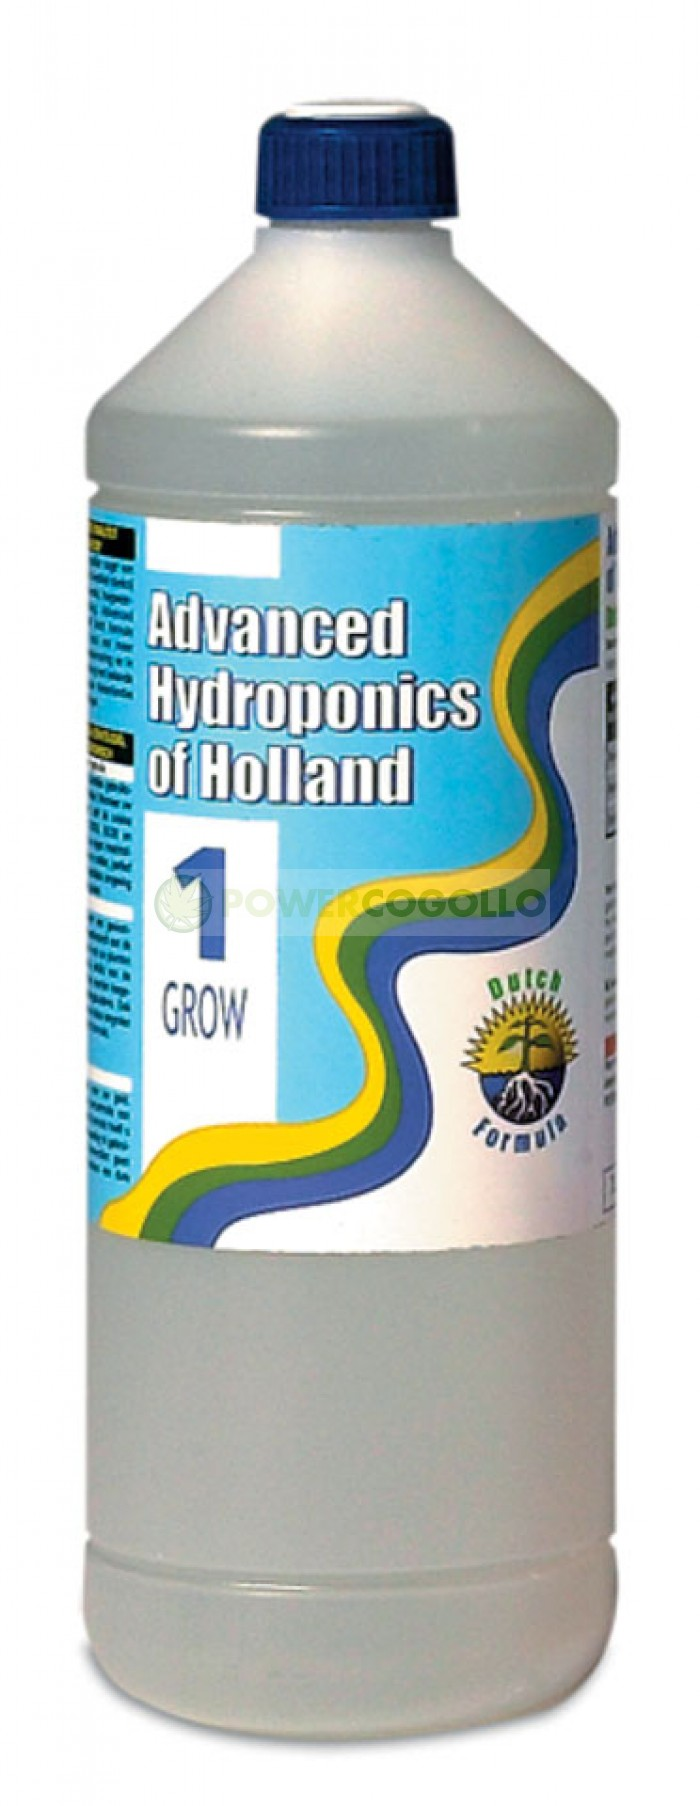 Dutch Fórmula Grow 1 (Advanced Hydroponics)